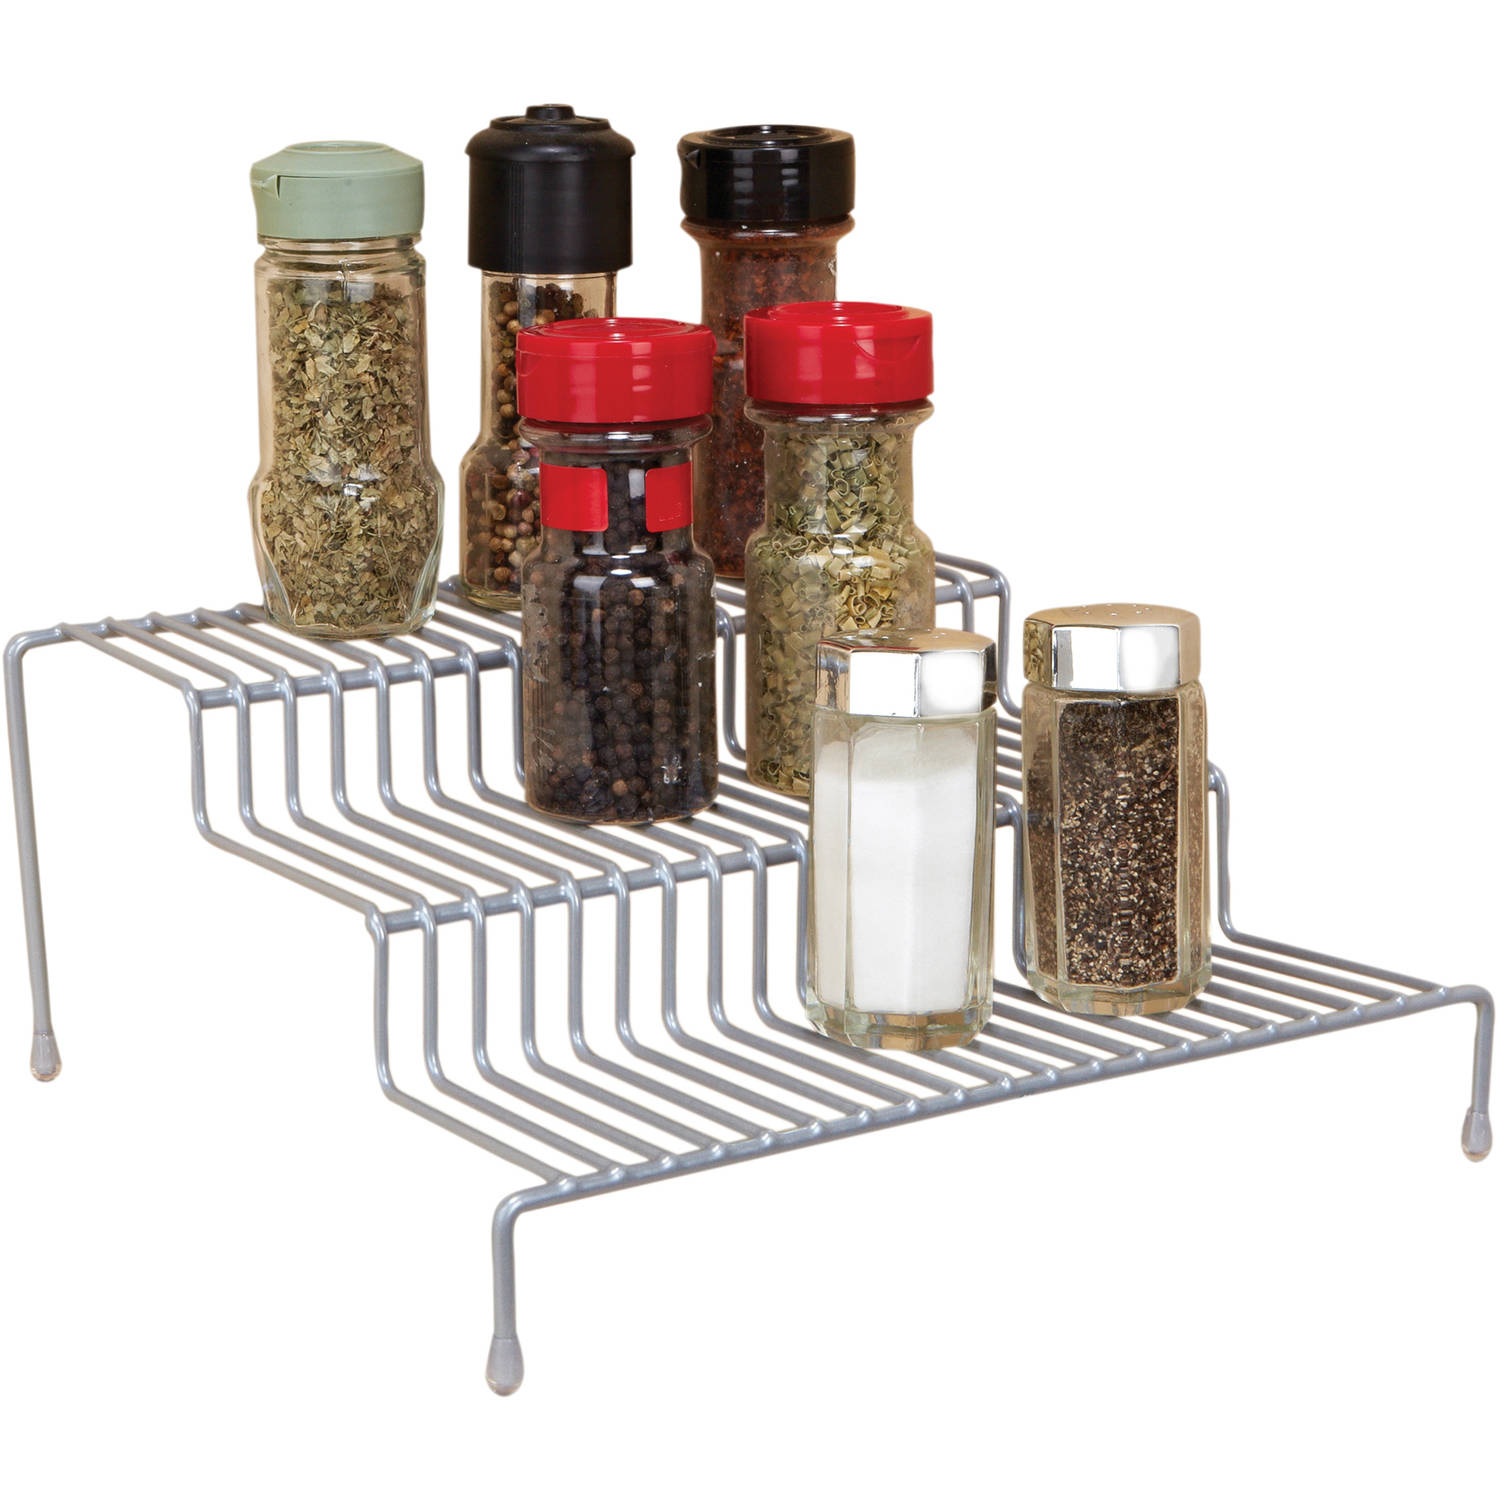 Grey 3-Tier Spice Organizer